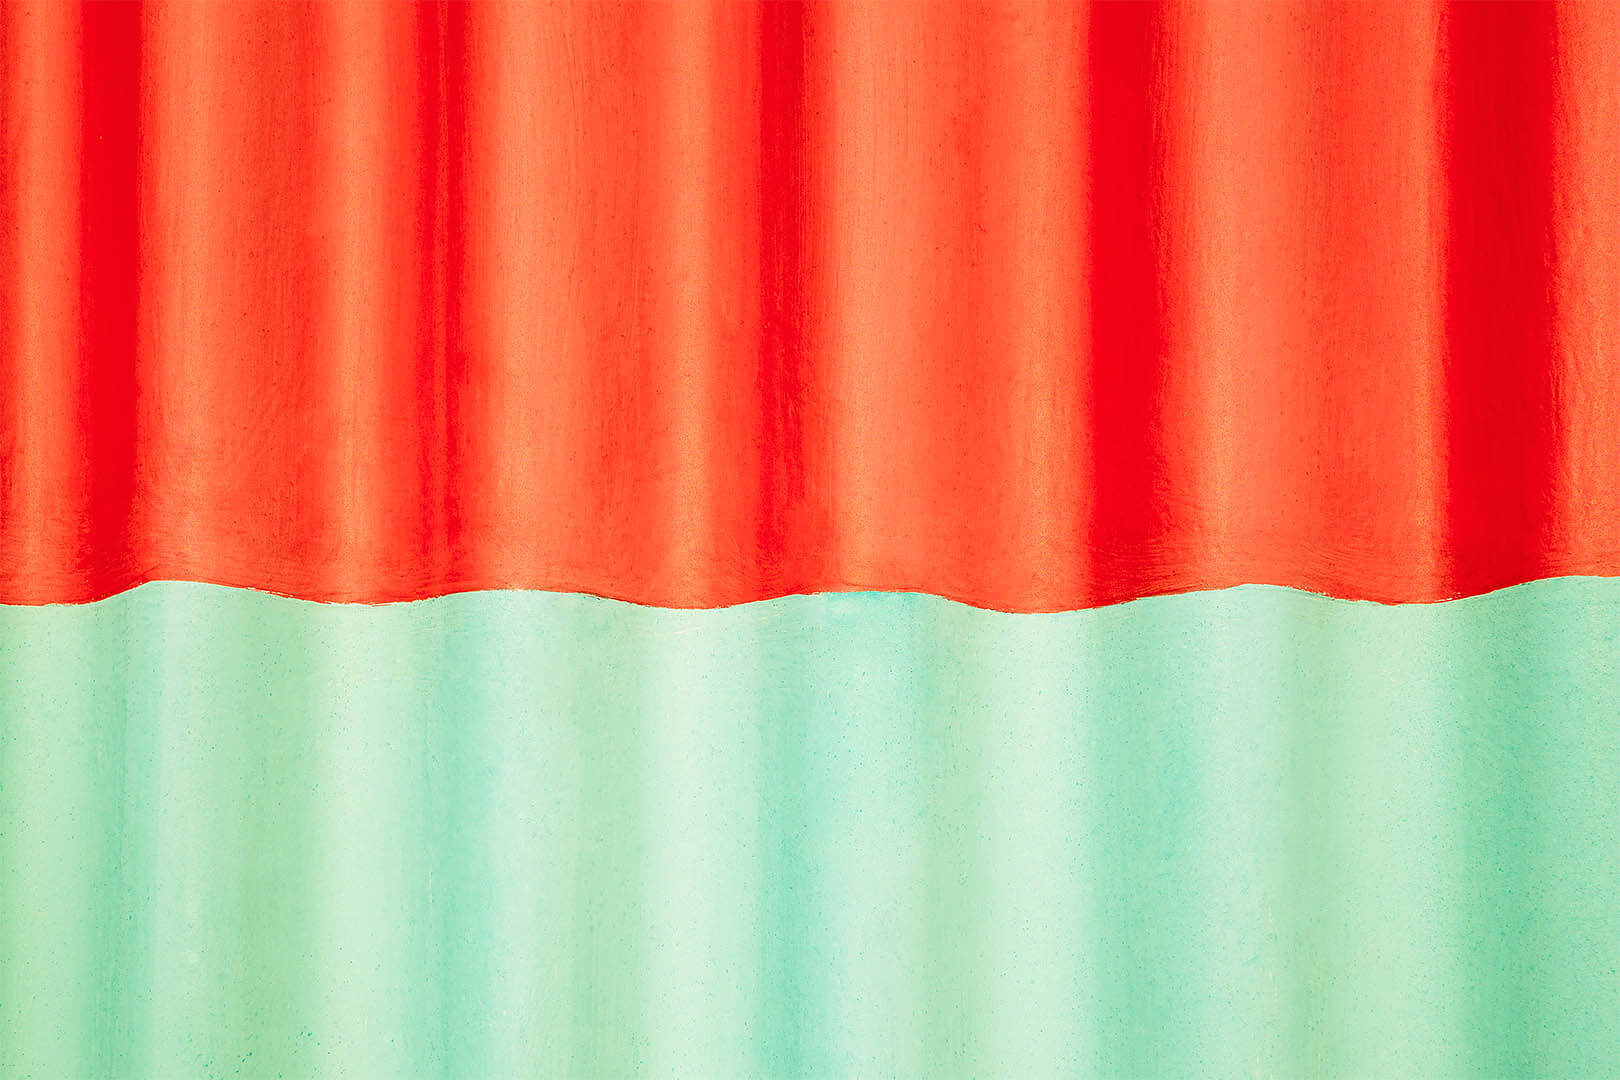 Red and Green Corrugated